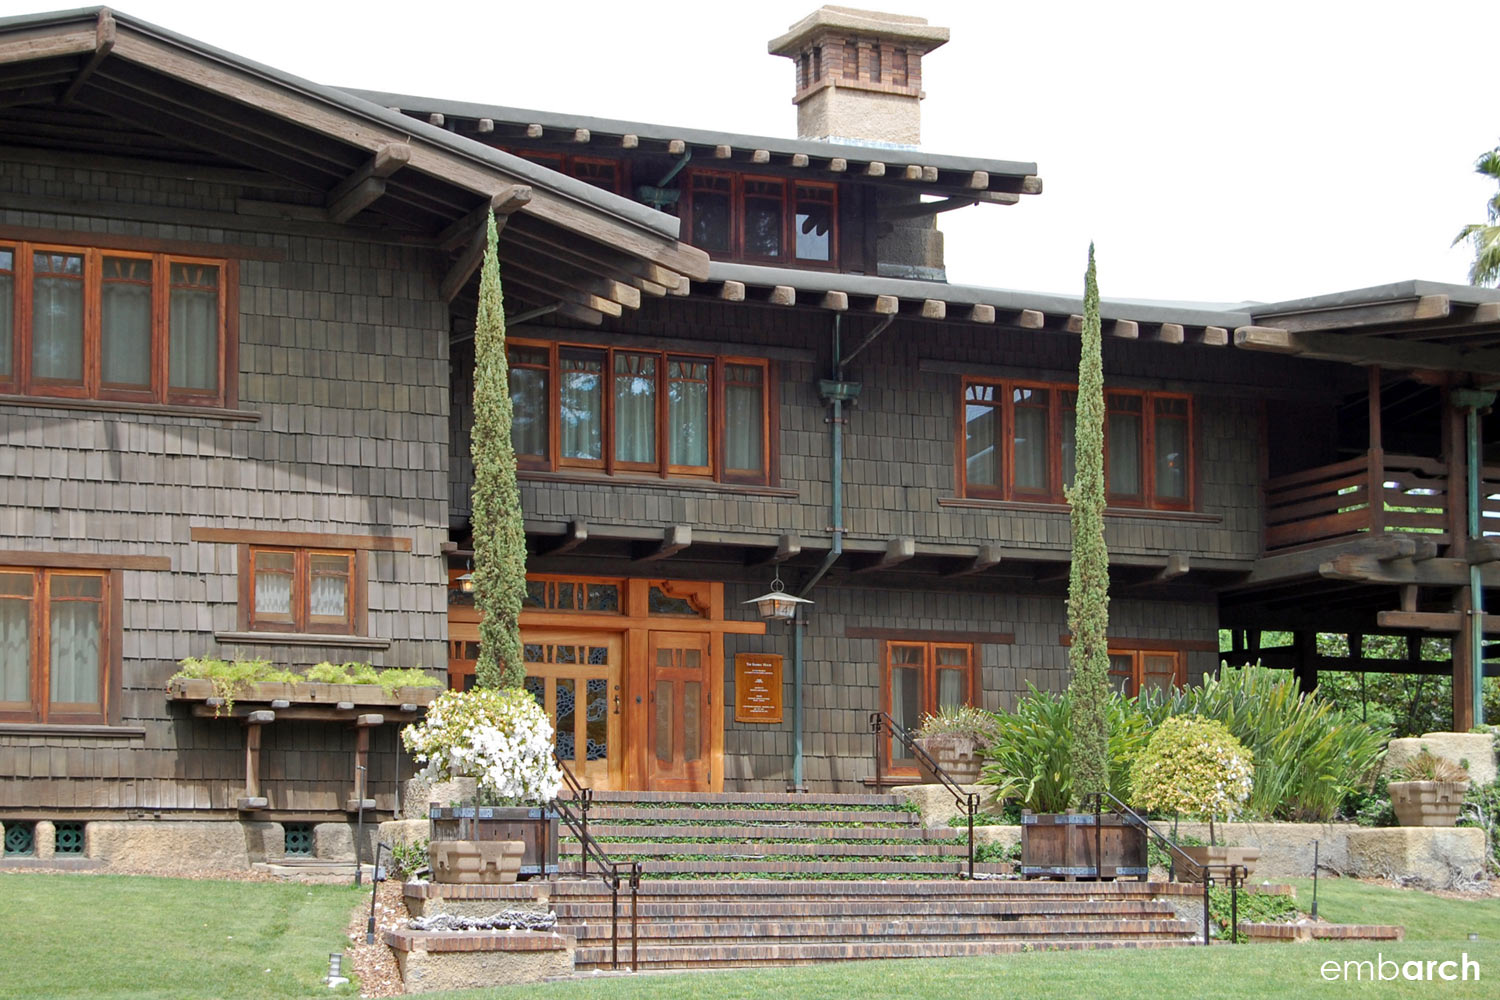 Gamble House - exterior view at front entry